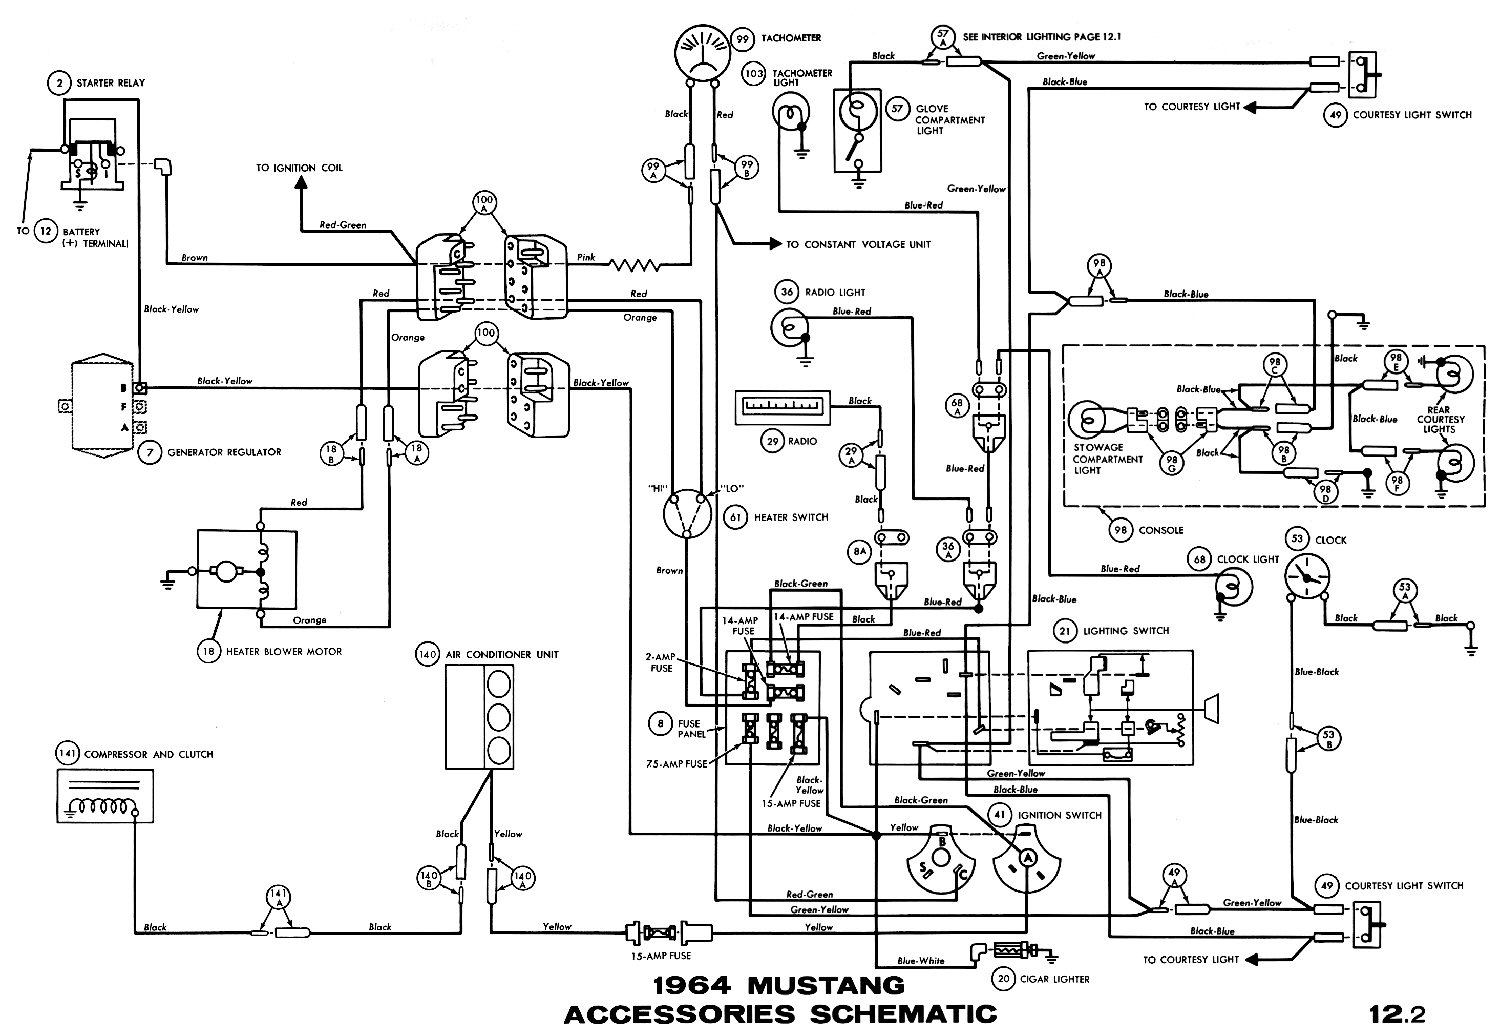 1970 Mustang Wiring Diagram | Wiring Diagram on